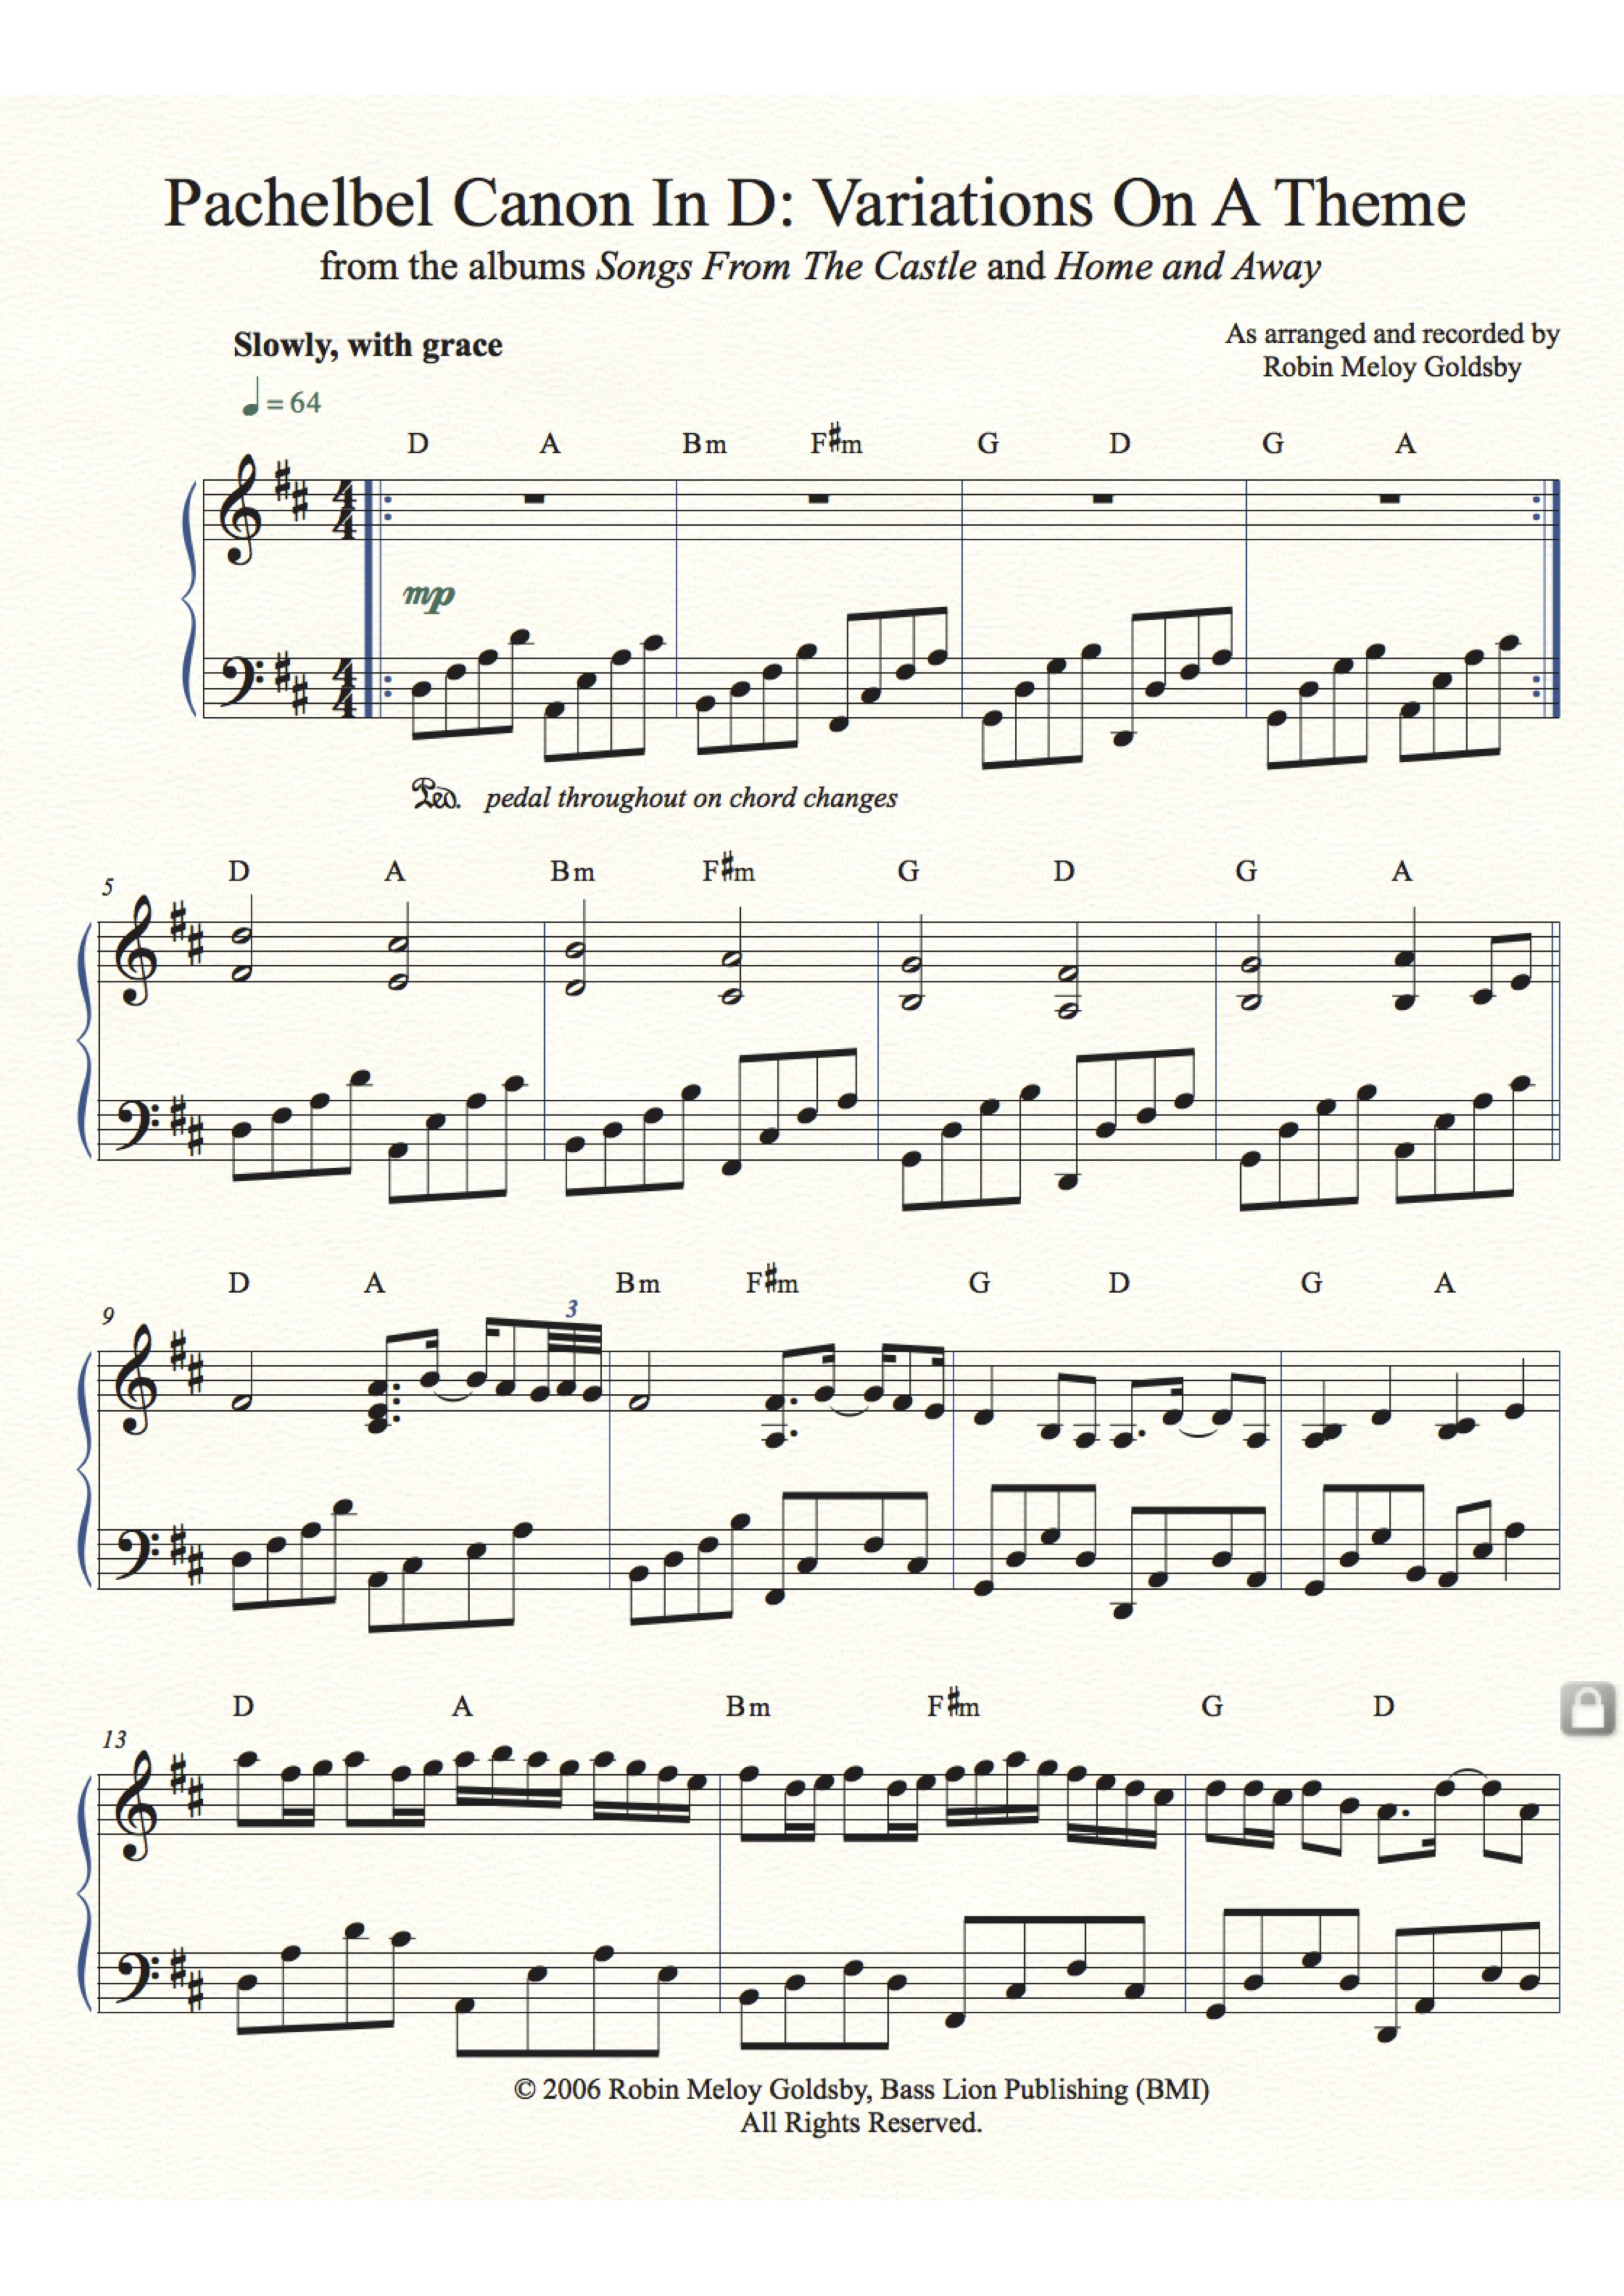 Pachelbel Canon In D: Variations On A Theme, arranged by Robin Meloy Goldsby